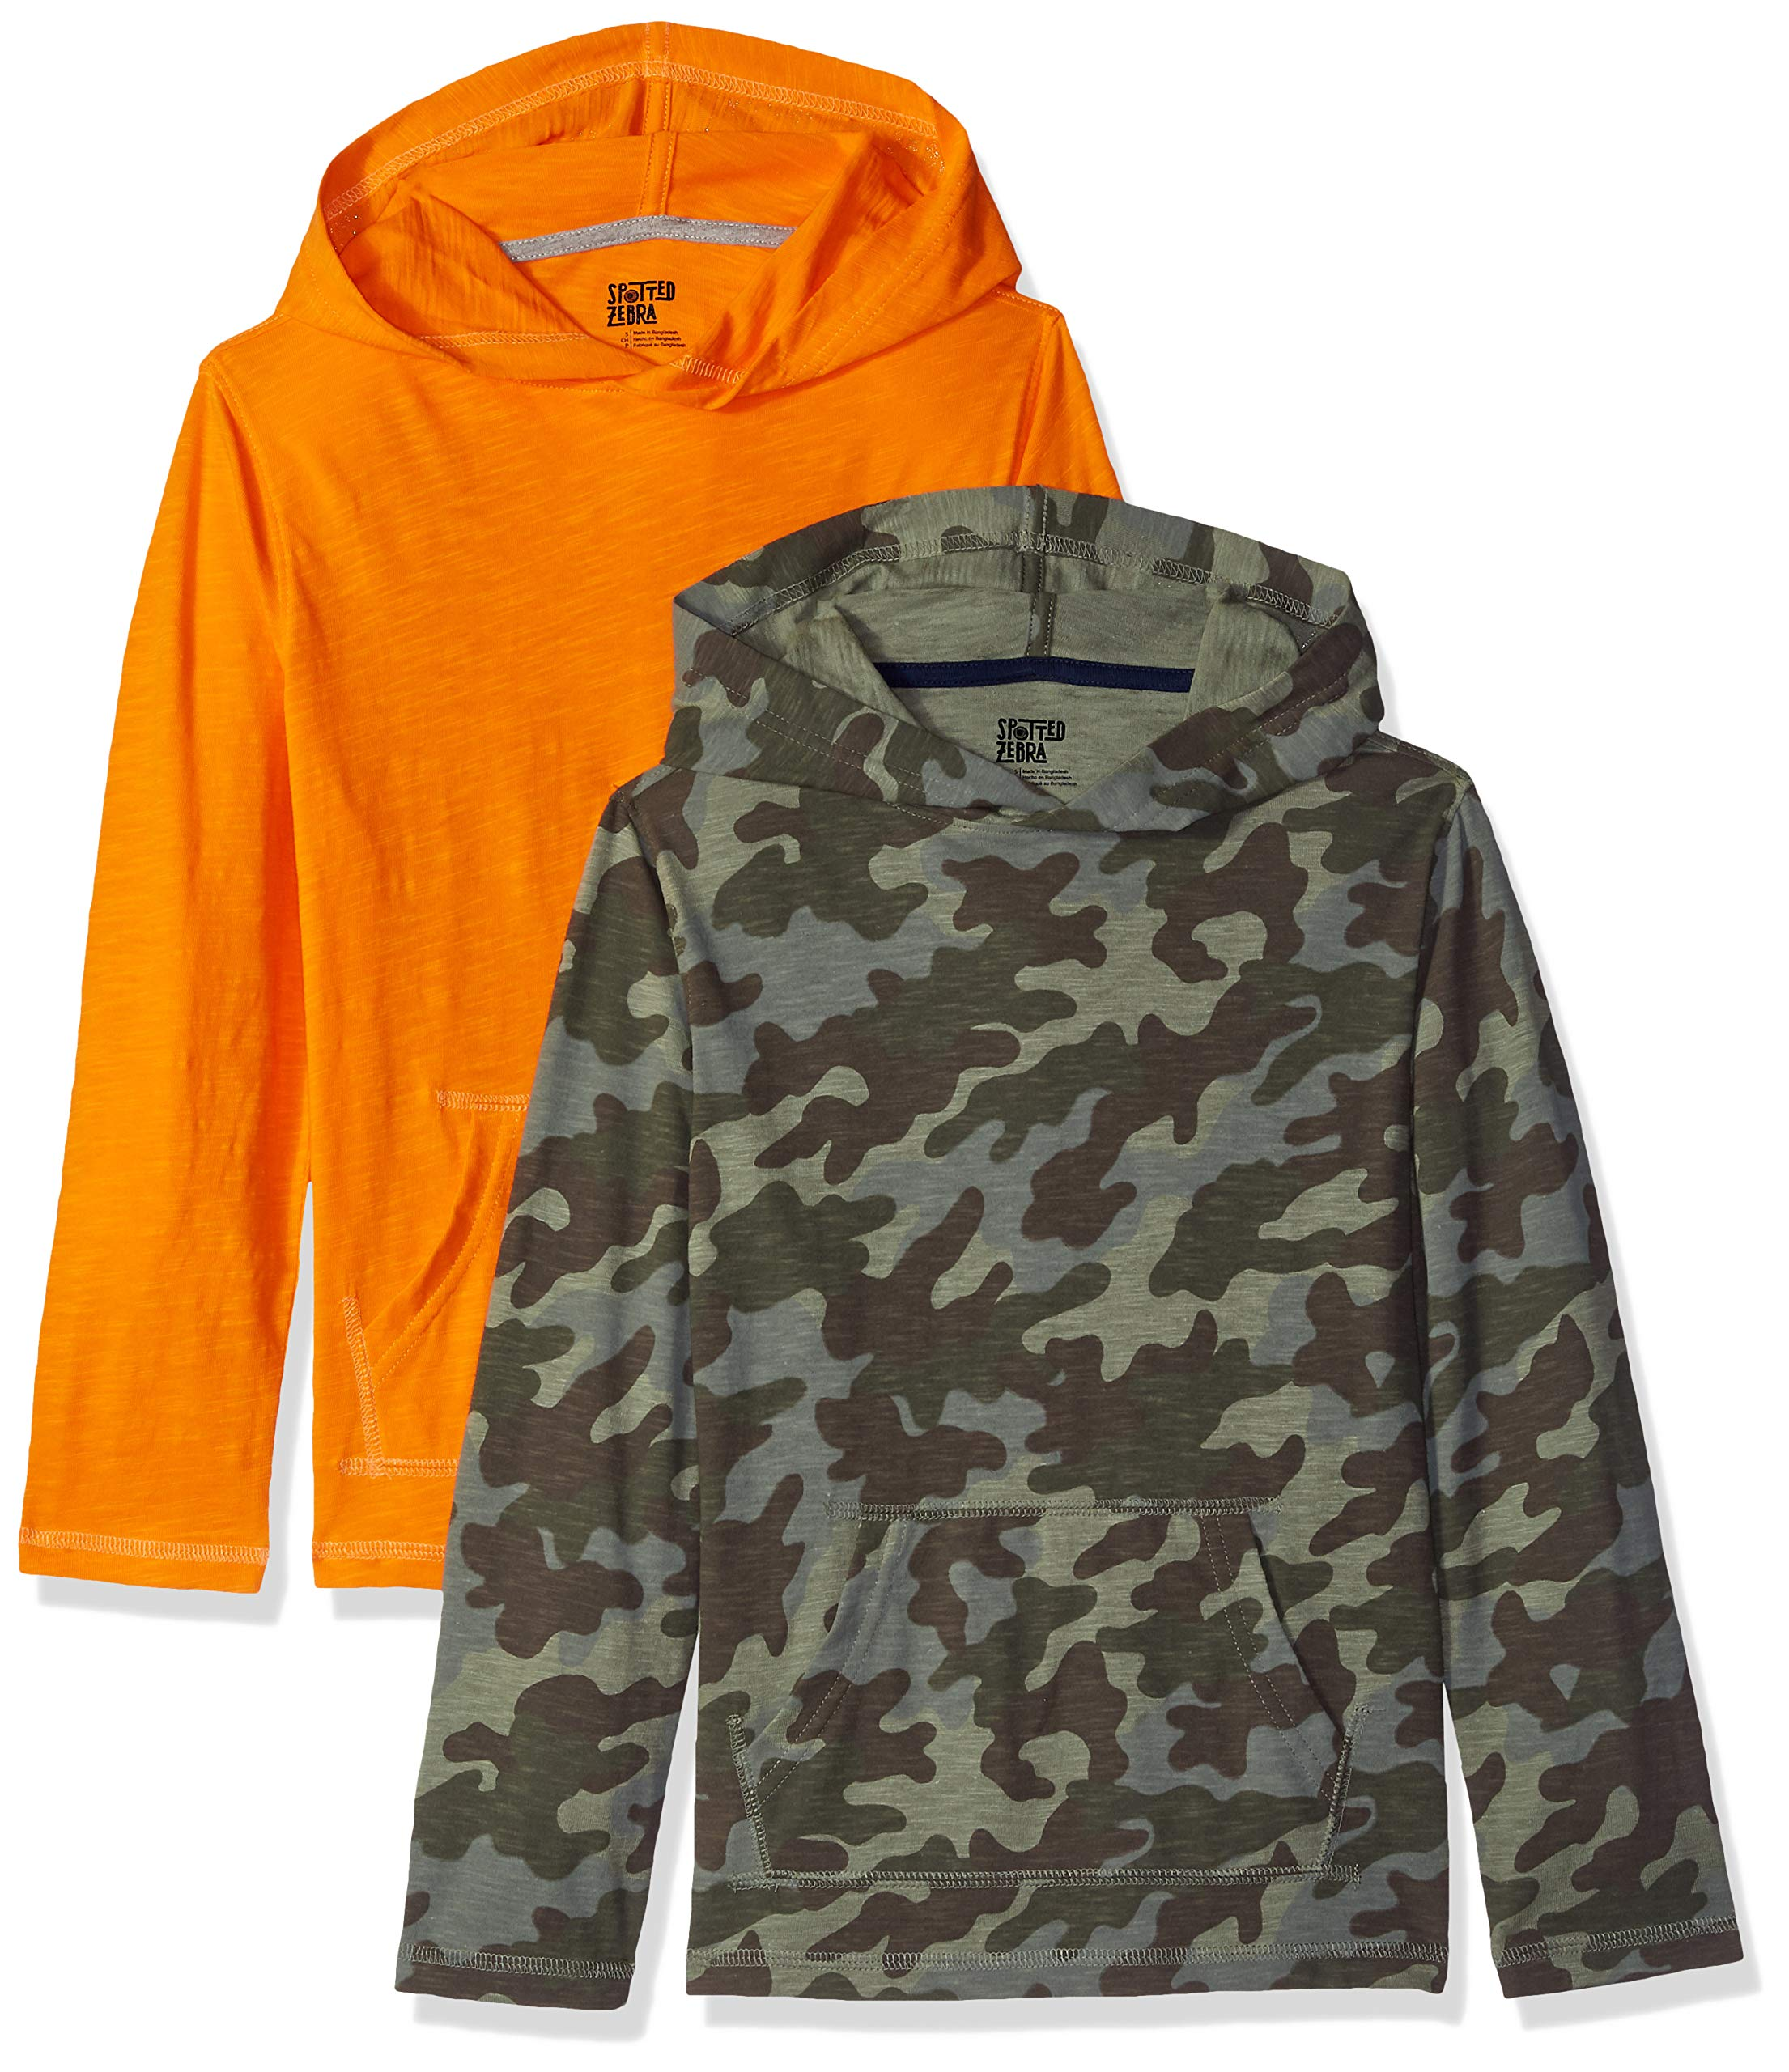 Spotted Zebra Big Boys' 2-Pack Hooded Long-Sleeve T-Shirts, Camo, Medium (8)